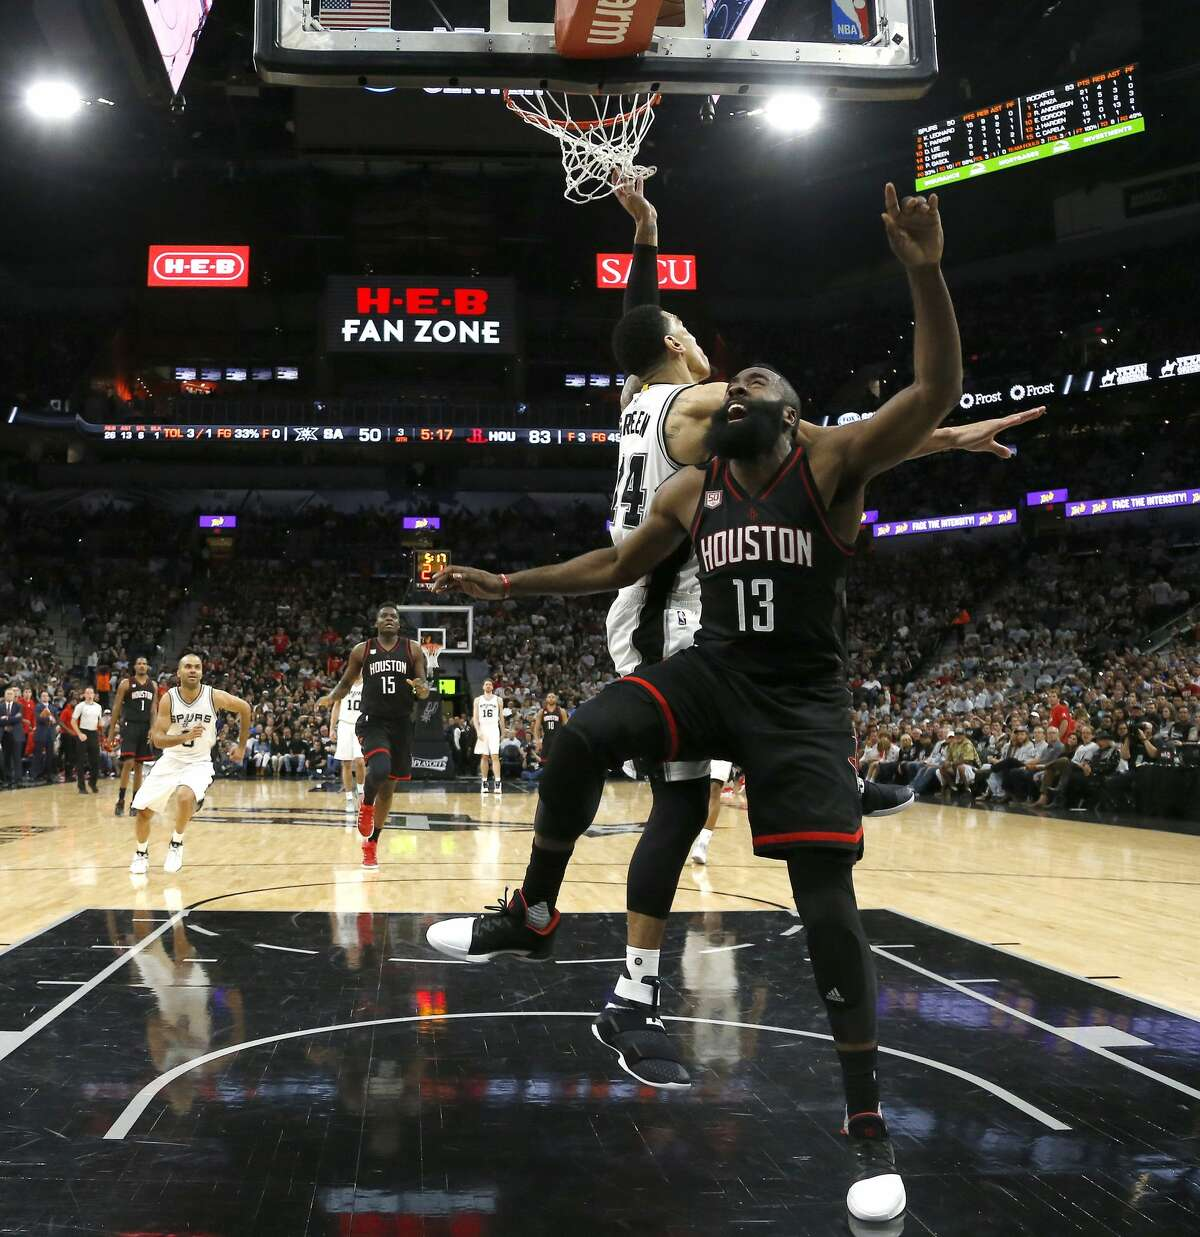 Houston Rockets guard James Harden (13) is fouled under the basket by San Antonio Spurs guard Danny Green (14) during the second half of Game 1 of the second-round of the Western Conference NBA playoffs at AT&T Center, Monday, May 1, 2017, in San Antonio. ( Karen Warren / Houston Chronicle )